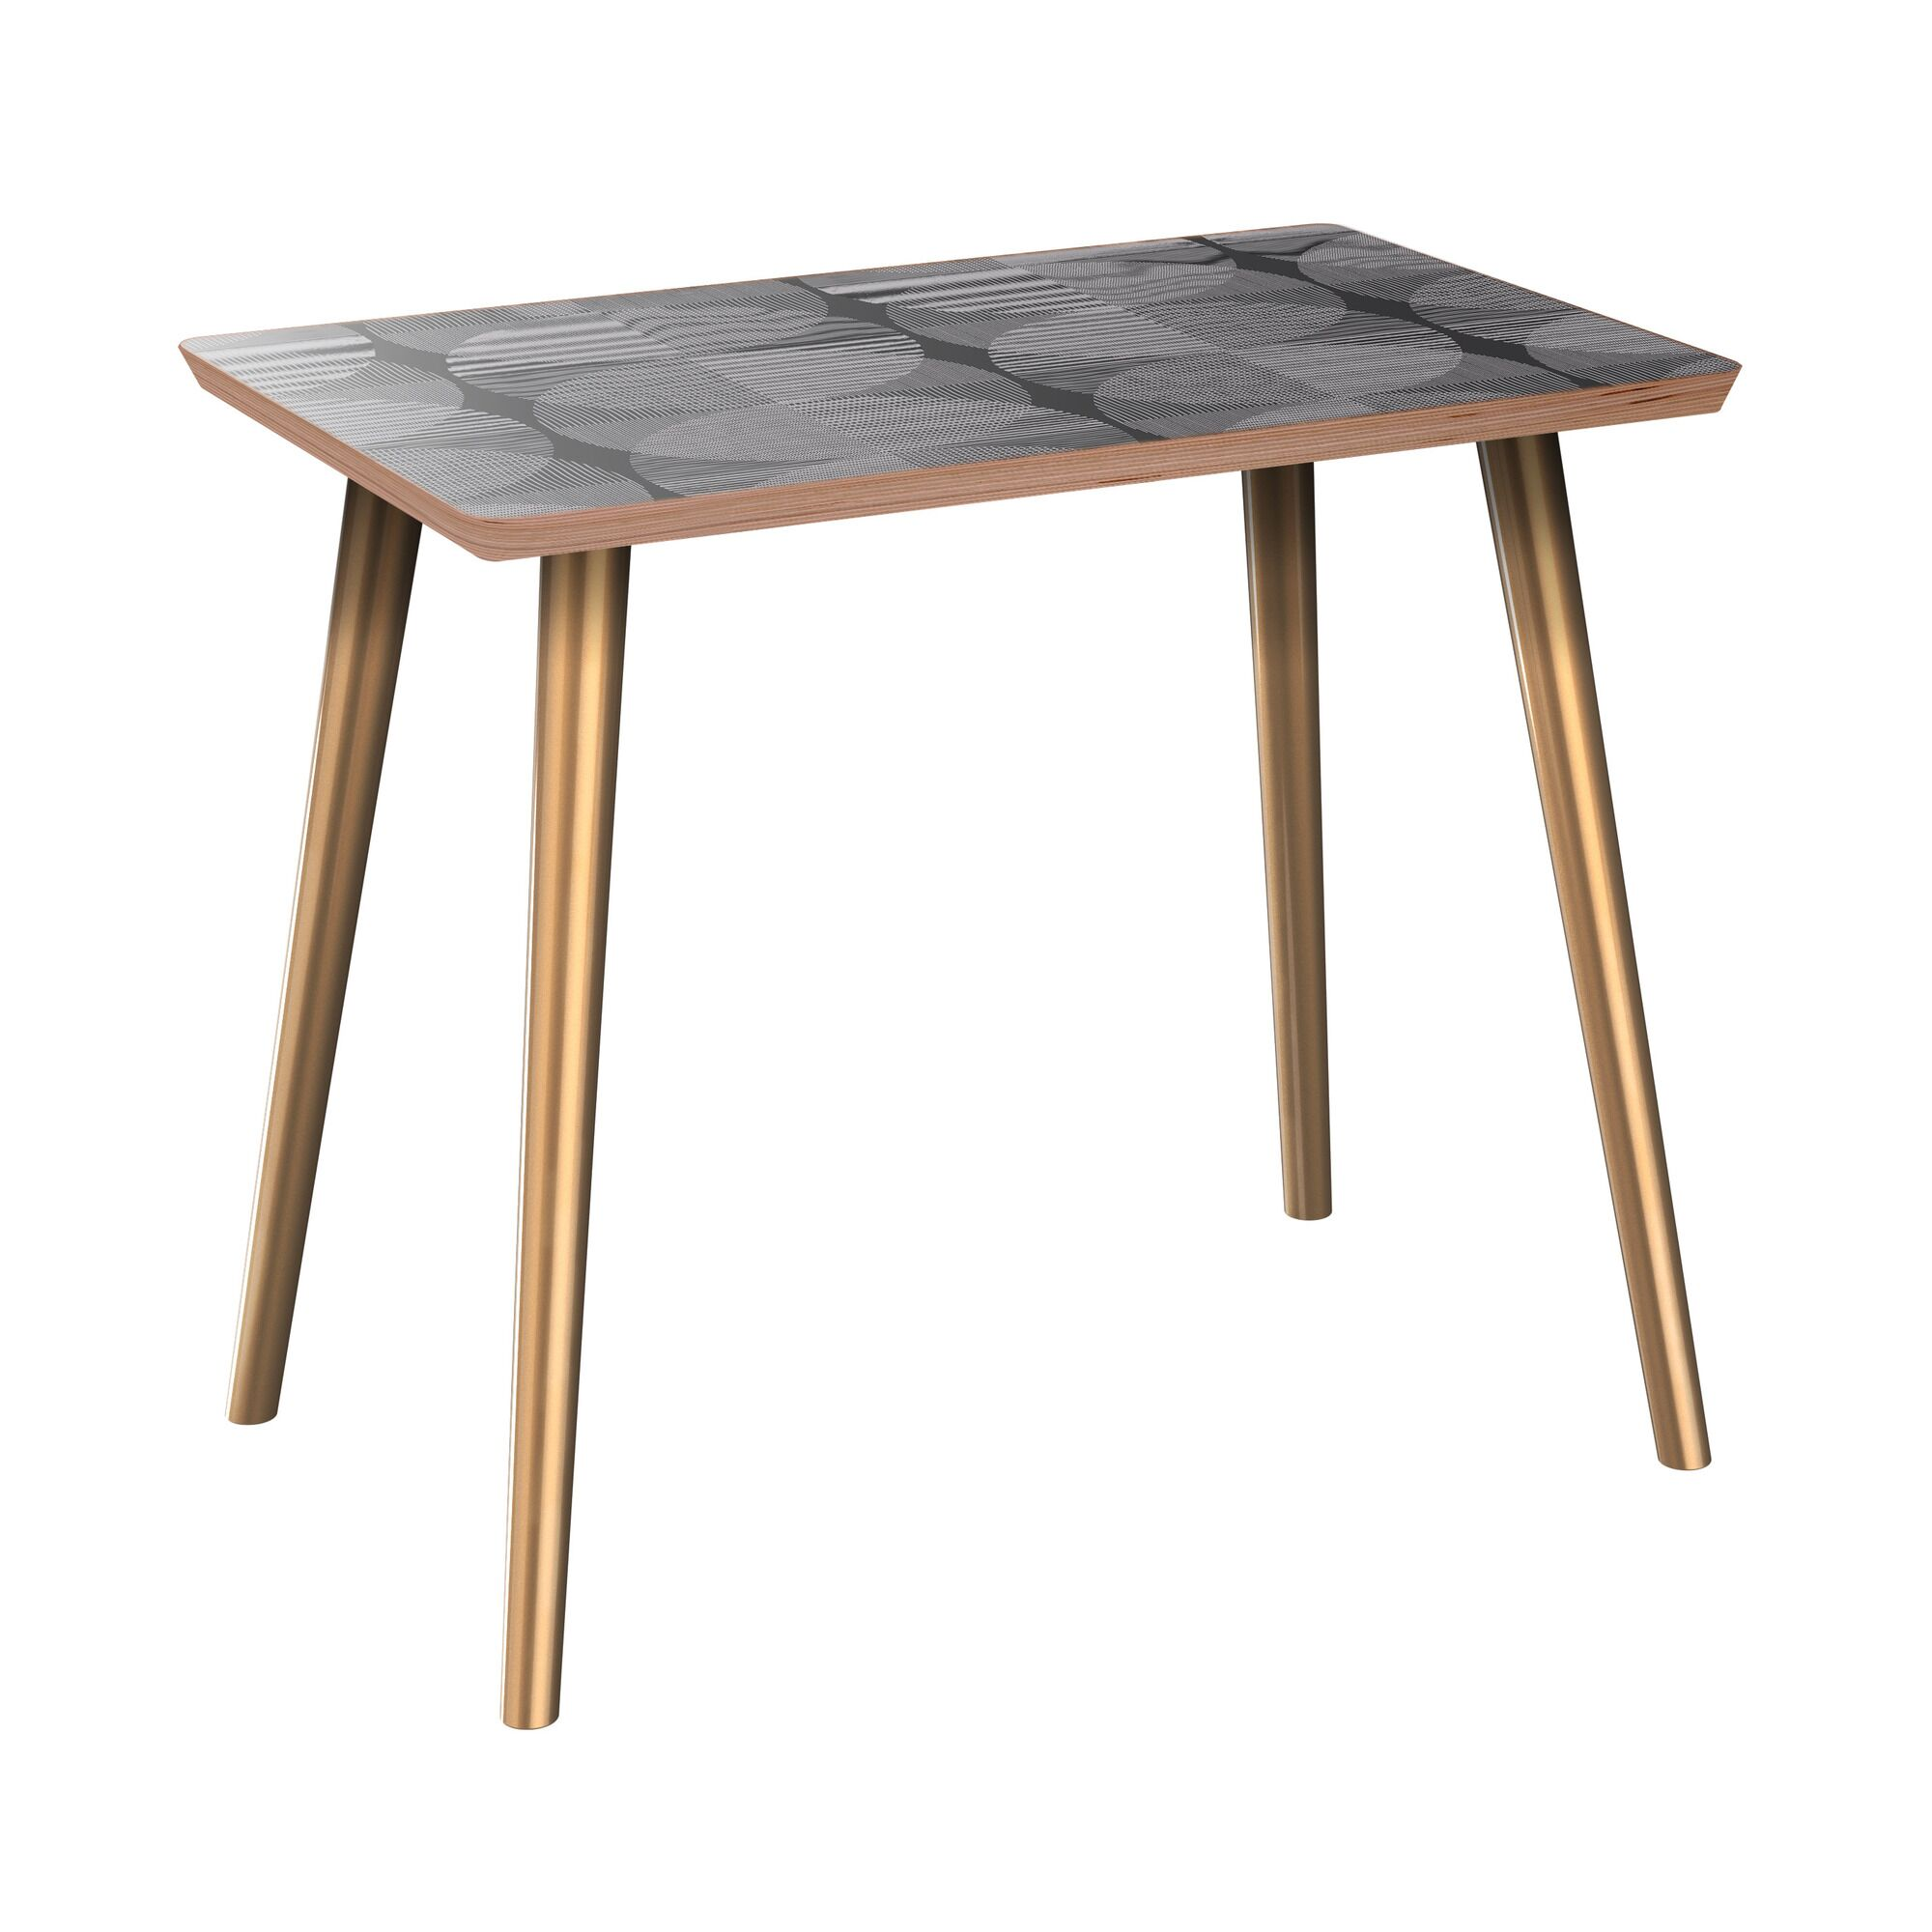 Evangelista End Table Table Base Color: Brass, Table Top Color: Walnut